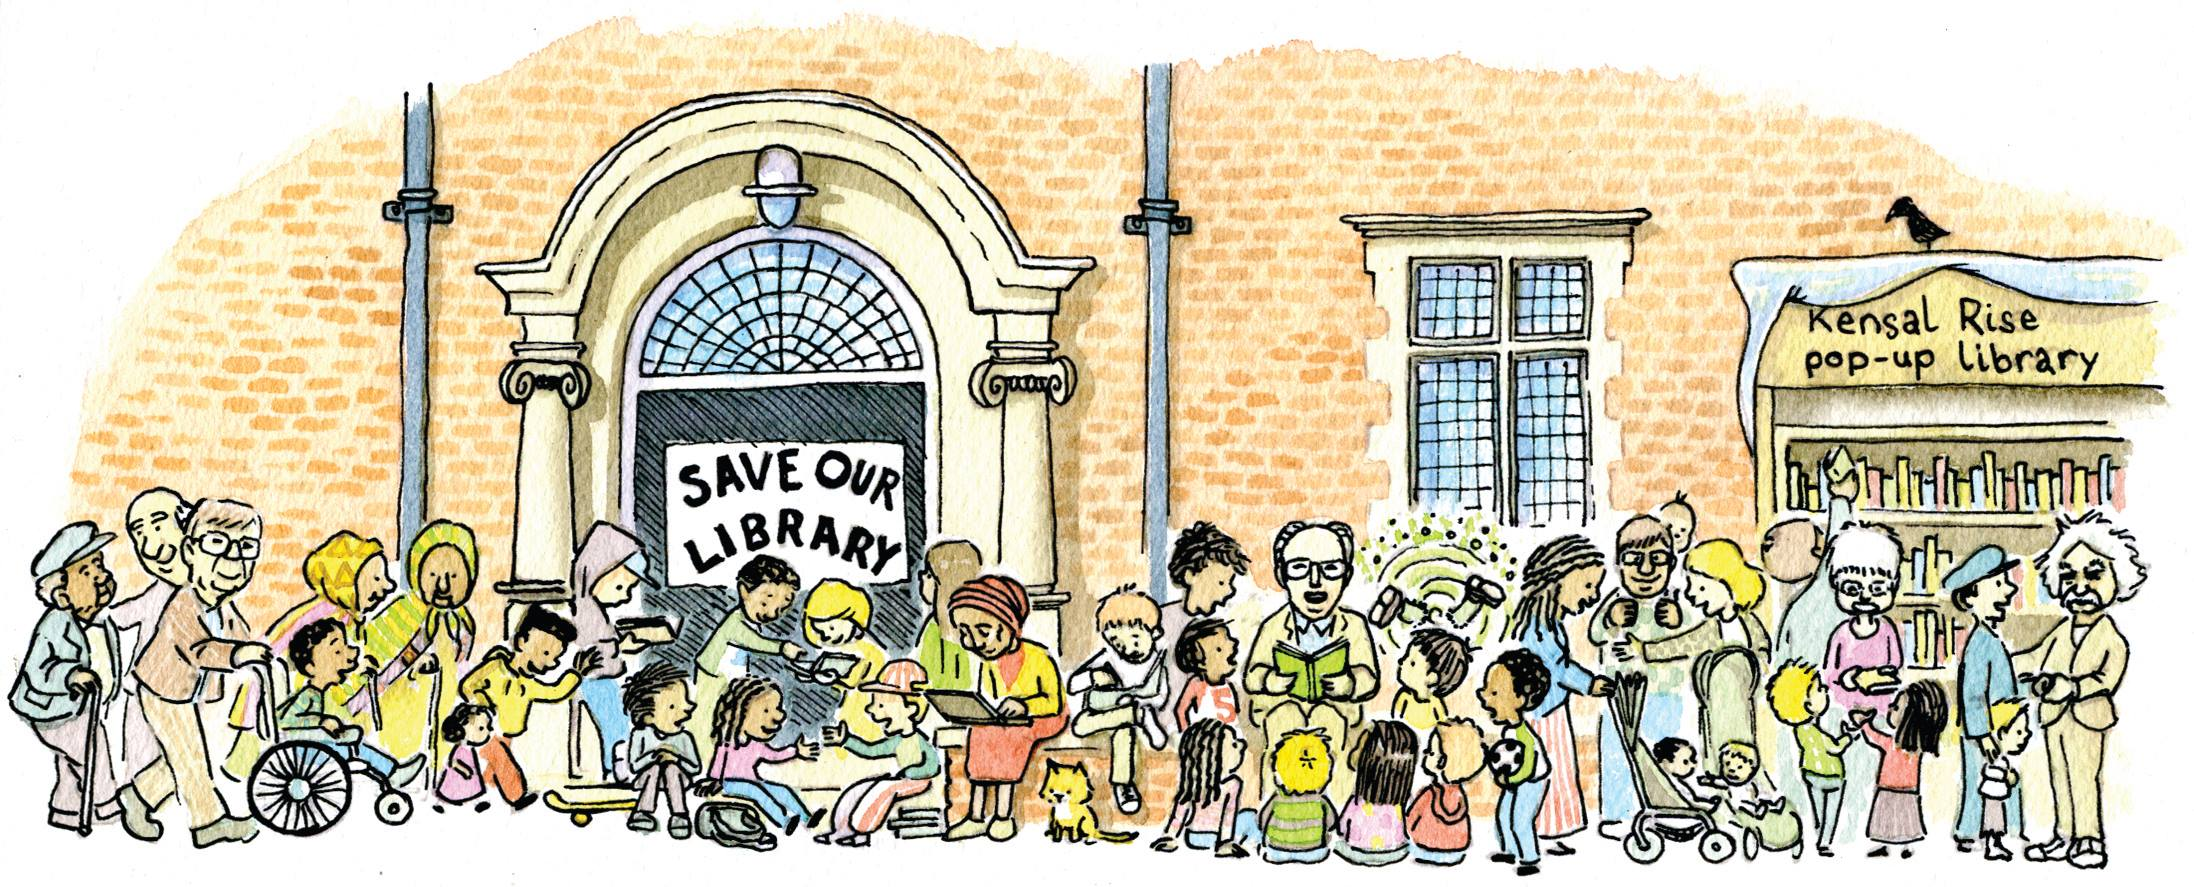 FRIENDS OF KENSAL RISE LIBRARY LIMITED